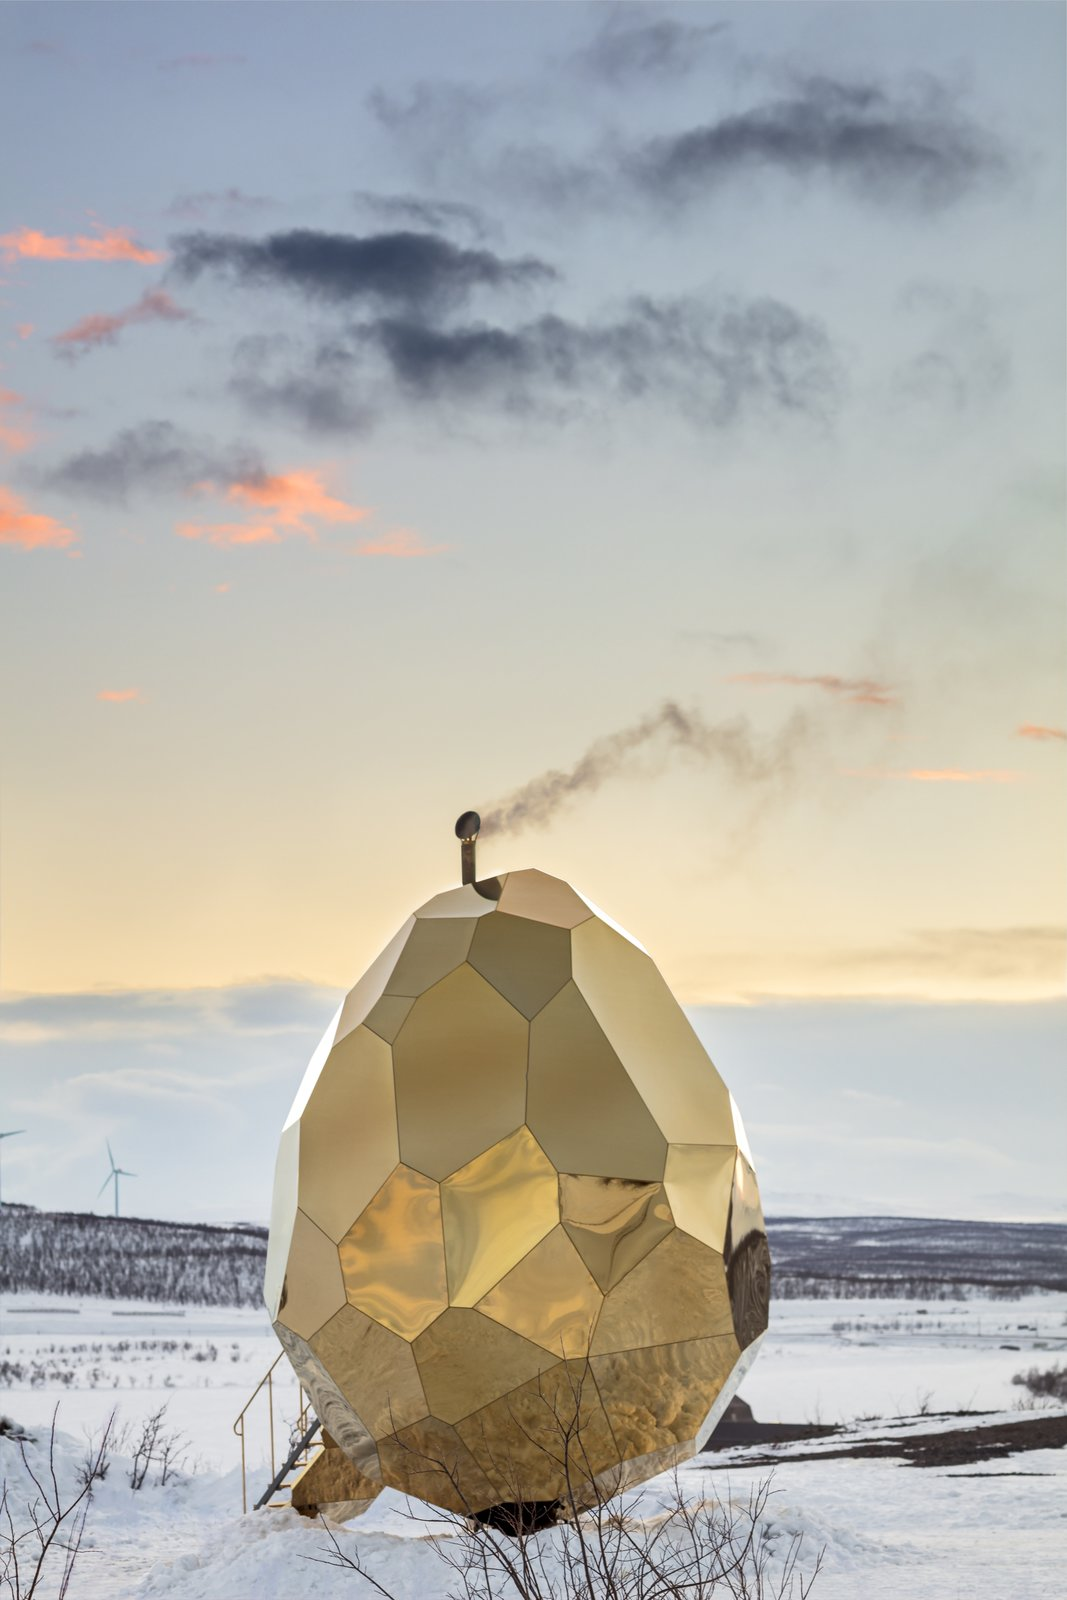 Photo 6 of 6 in A Golden, Egg-Shaped Sauna Signifies the Rebirth of a Swedish Mining Town